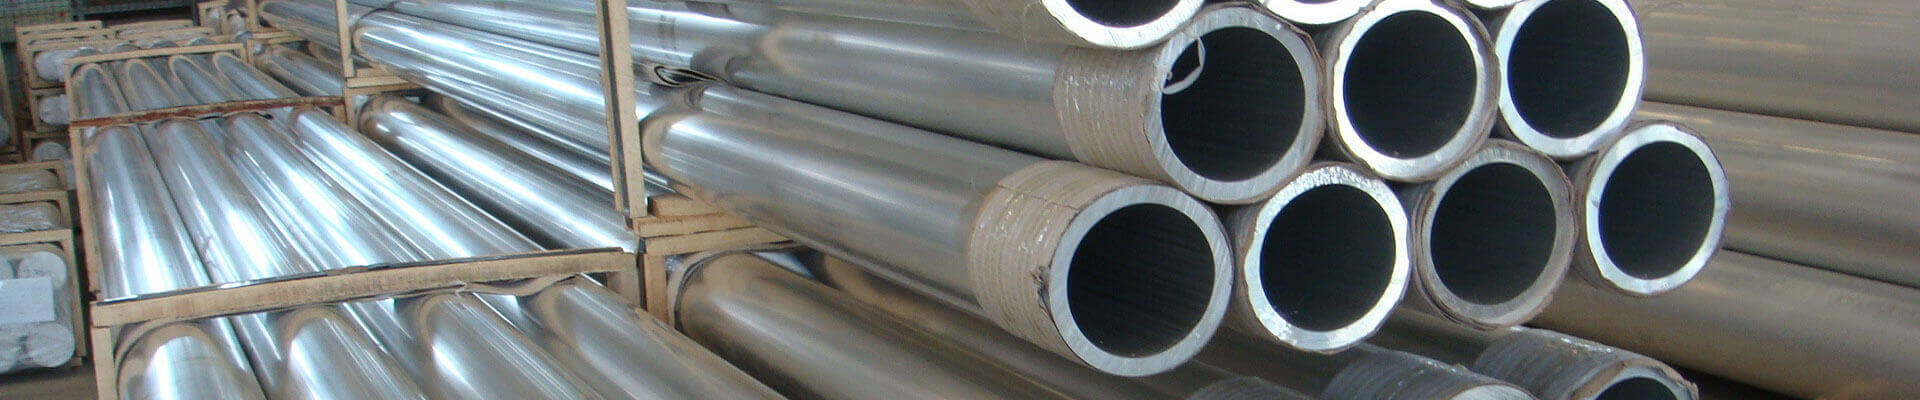 Aluminium 6060 Pipes banner